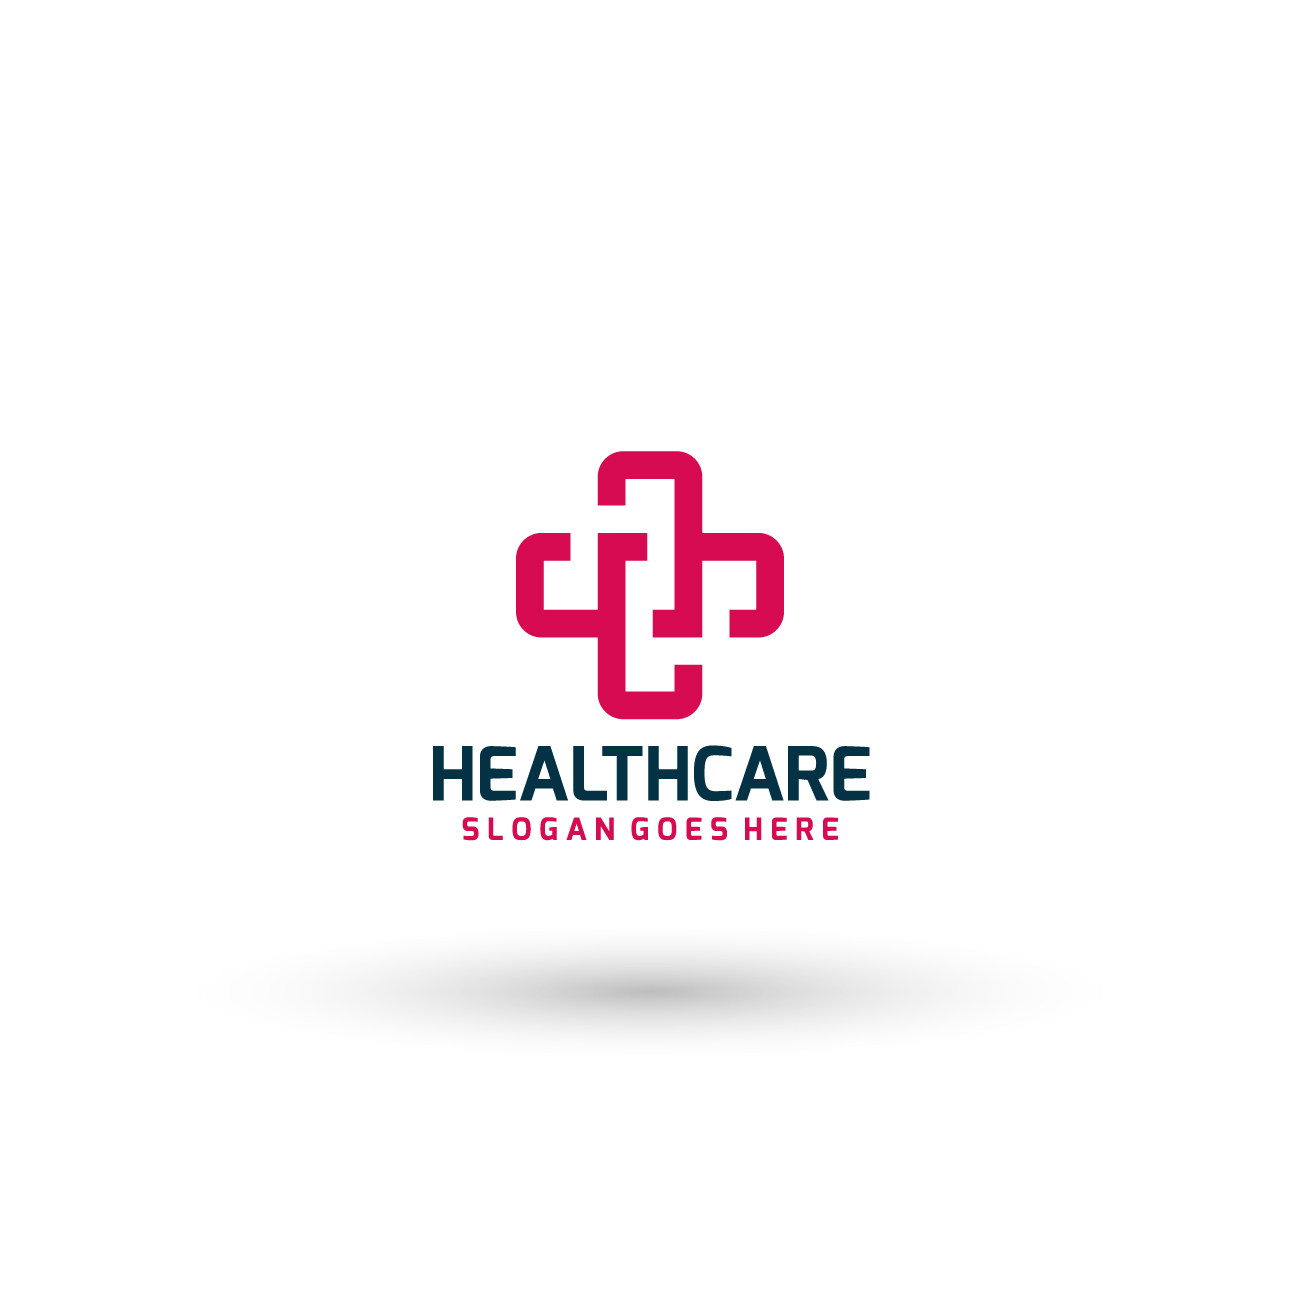 Hospital Logo by Piici Studio  a perfect logo for Medical & Pharmaceutical